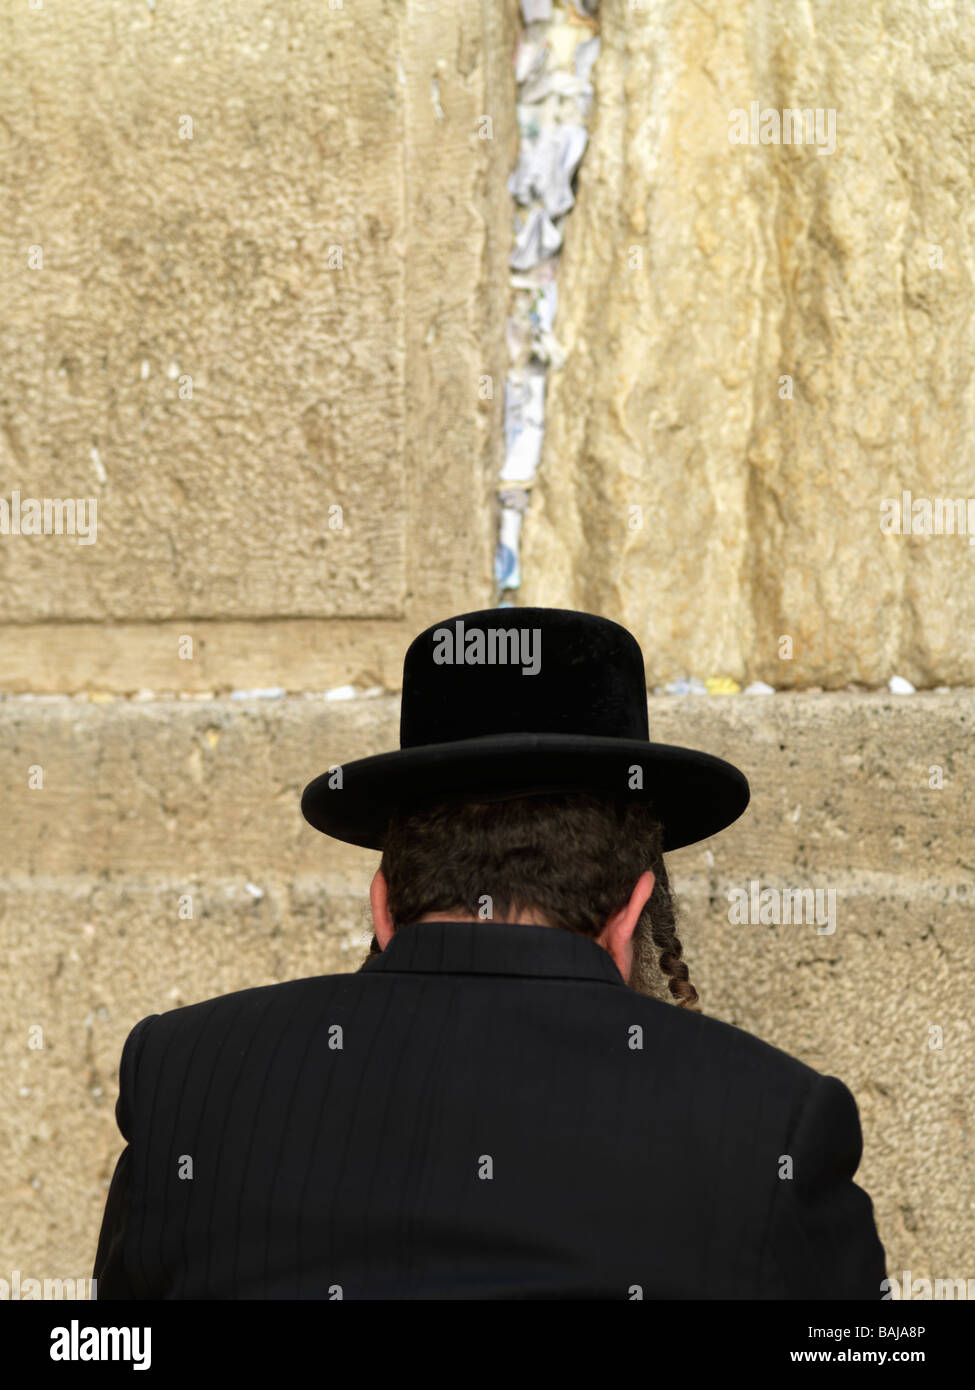 Israel, Jerusalem, Western Wall or Wailing Wall with worshiper - Stock Image